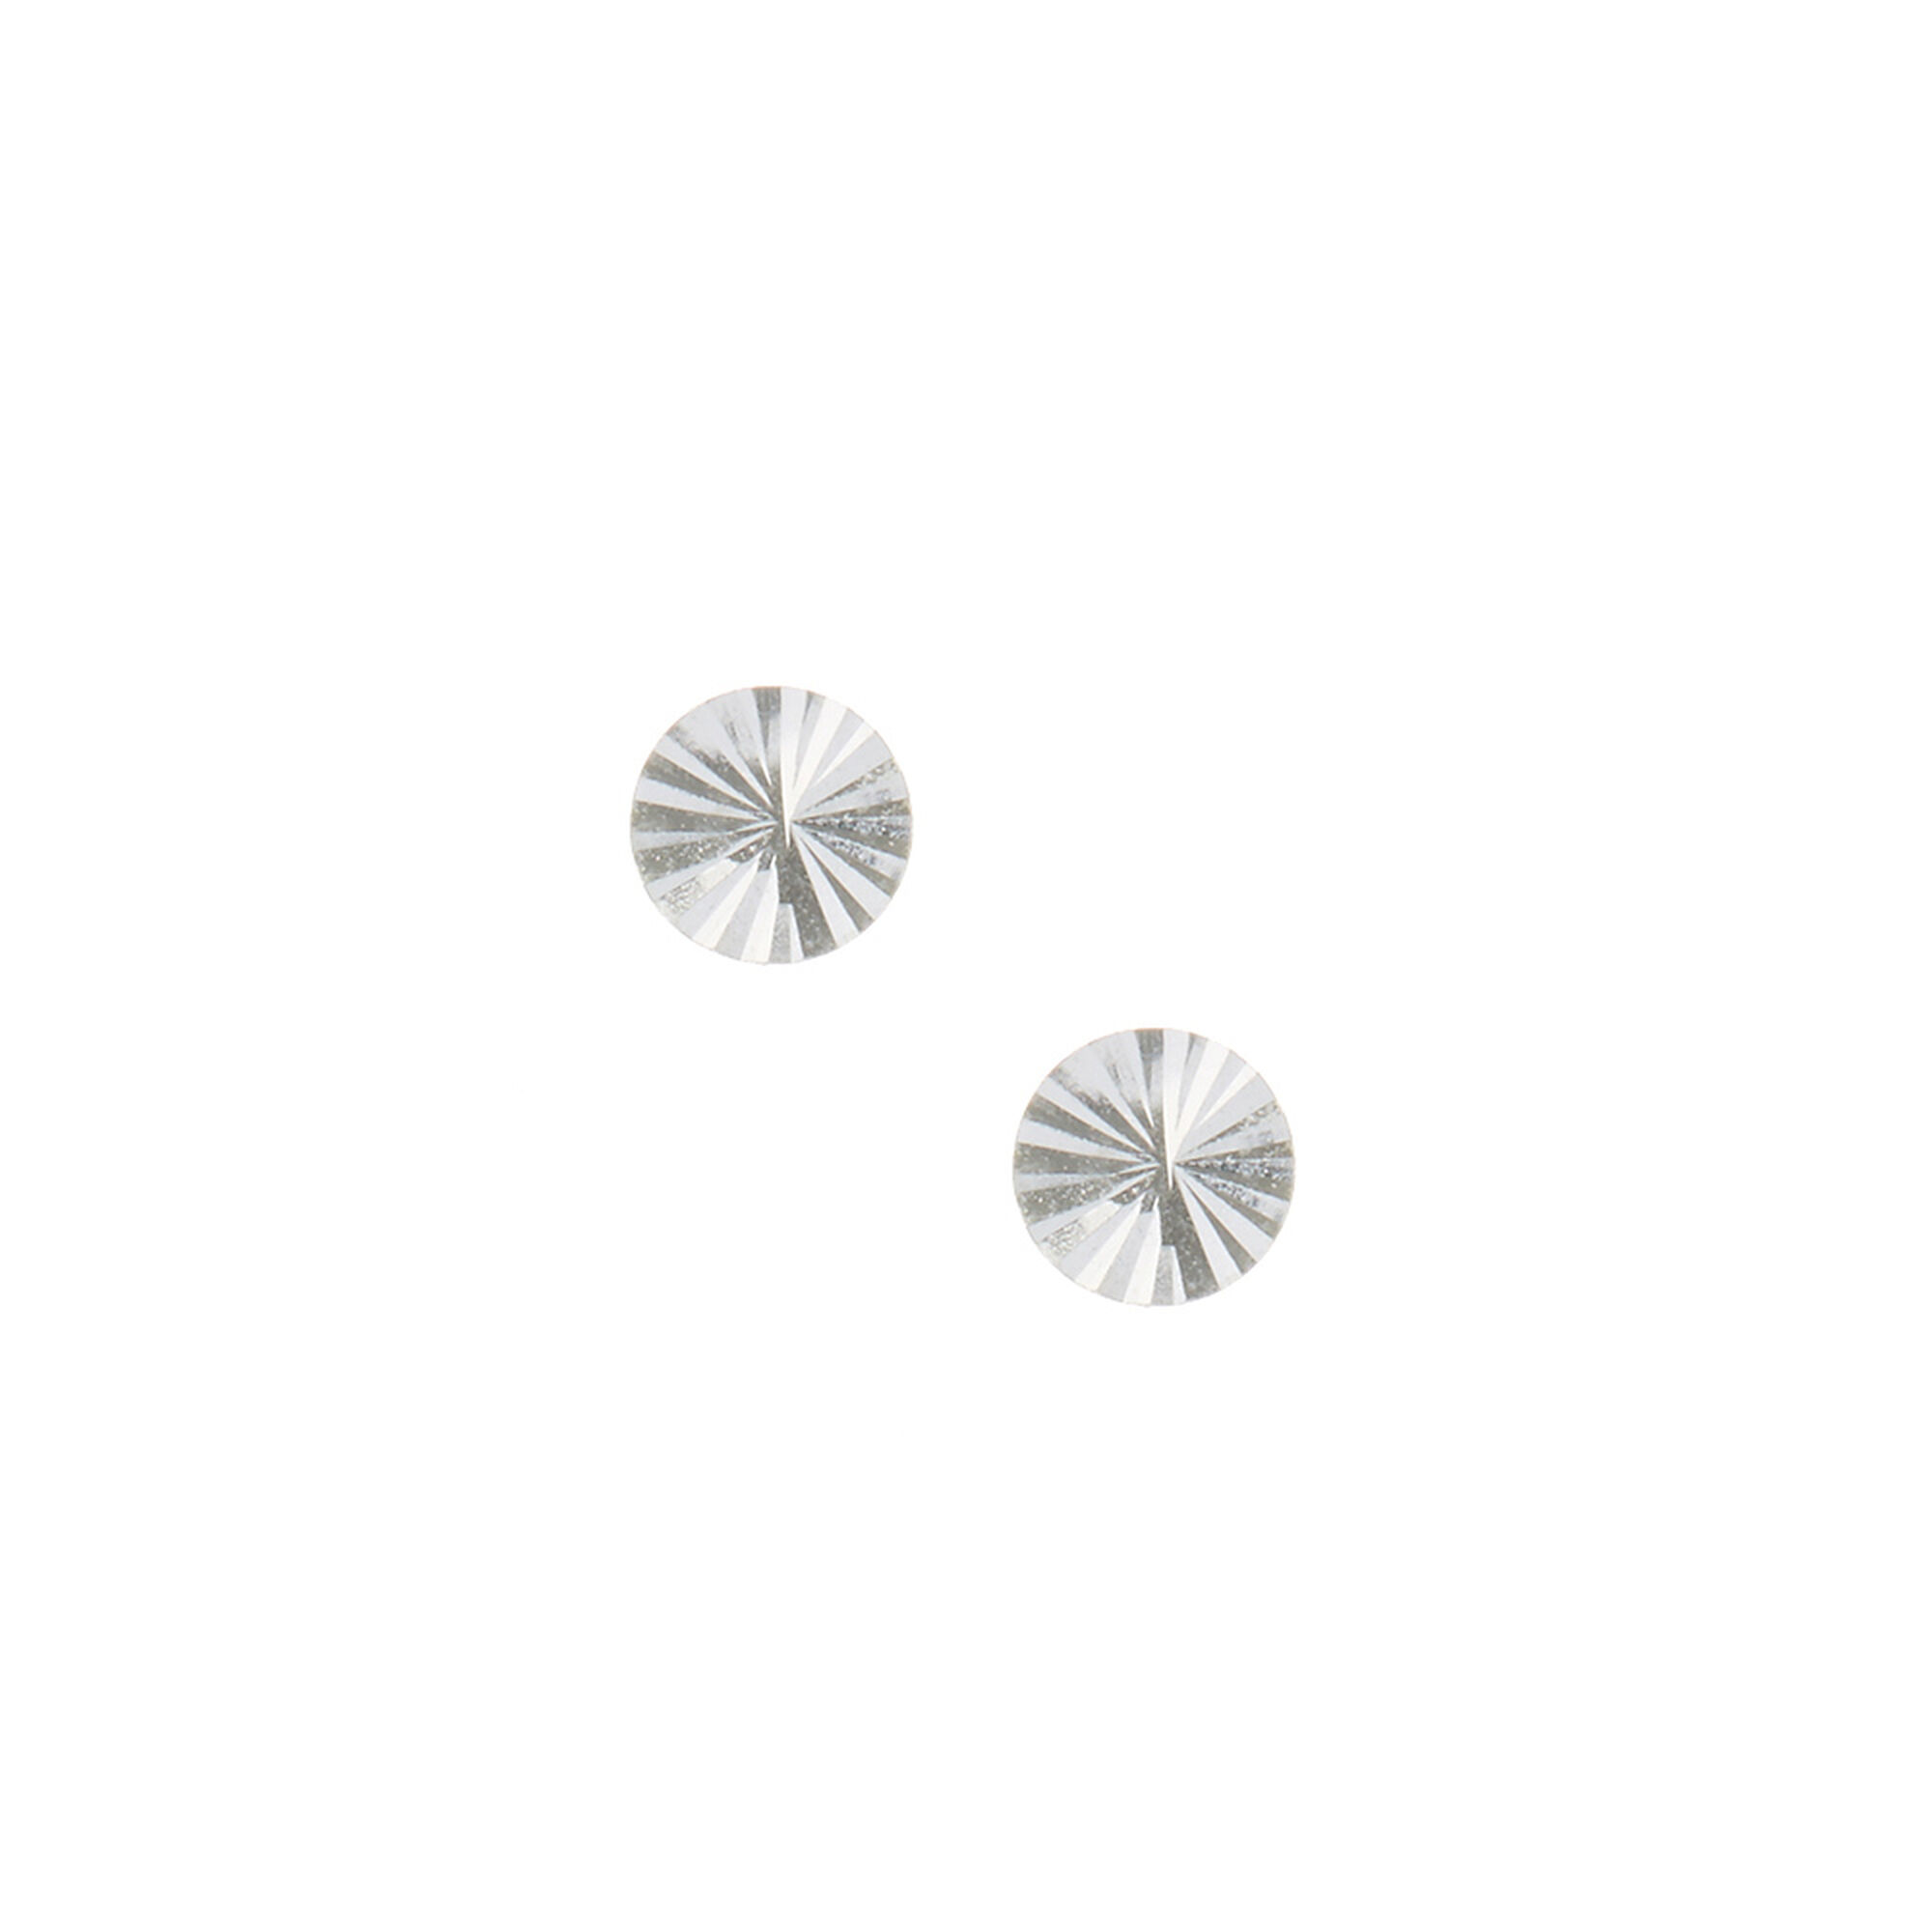 atheria avery earrings diamond jewelry products by llc stud